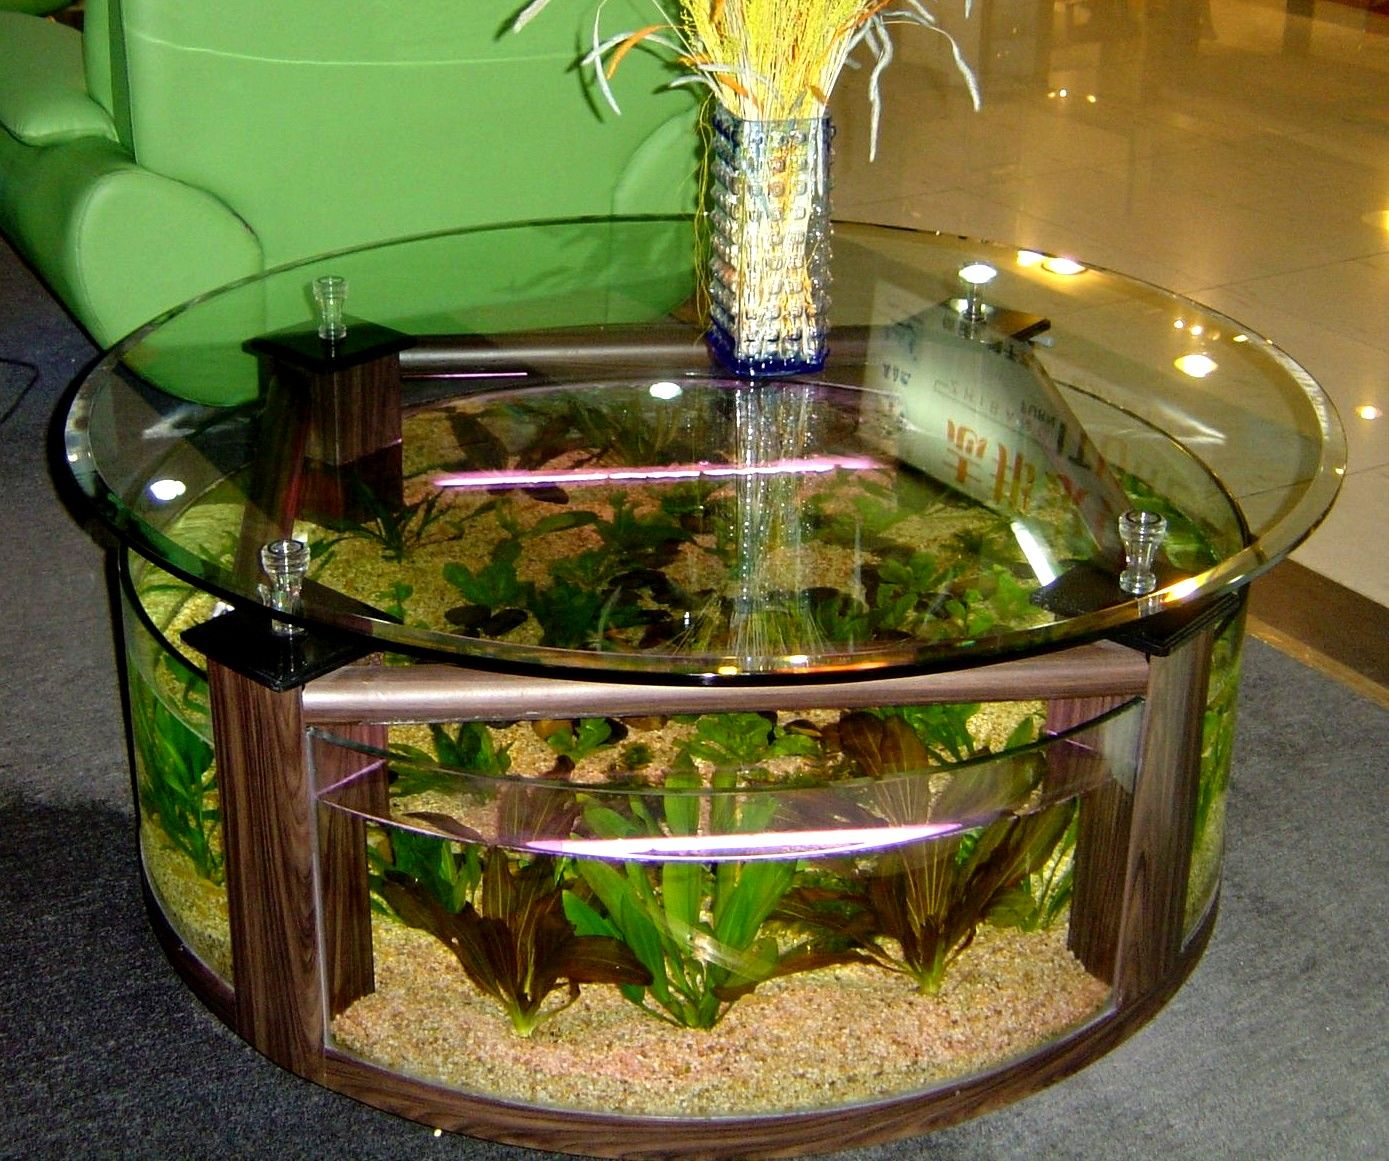 Home Coffee Table Aquarium Design Ideas2 Aquarium Design Ideas